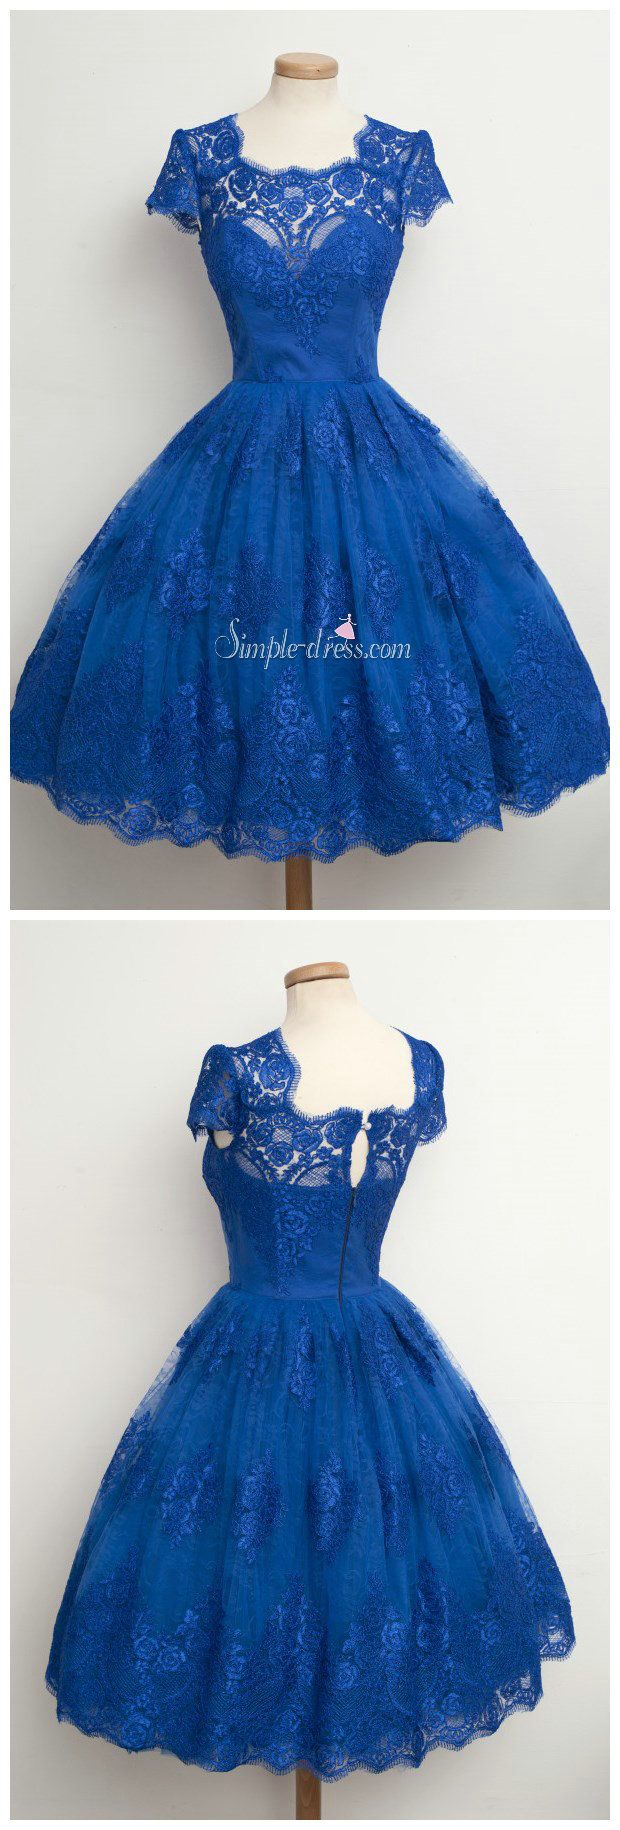 Vintage scallopededge cap sleeves lace blue short prom cocktail